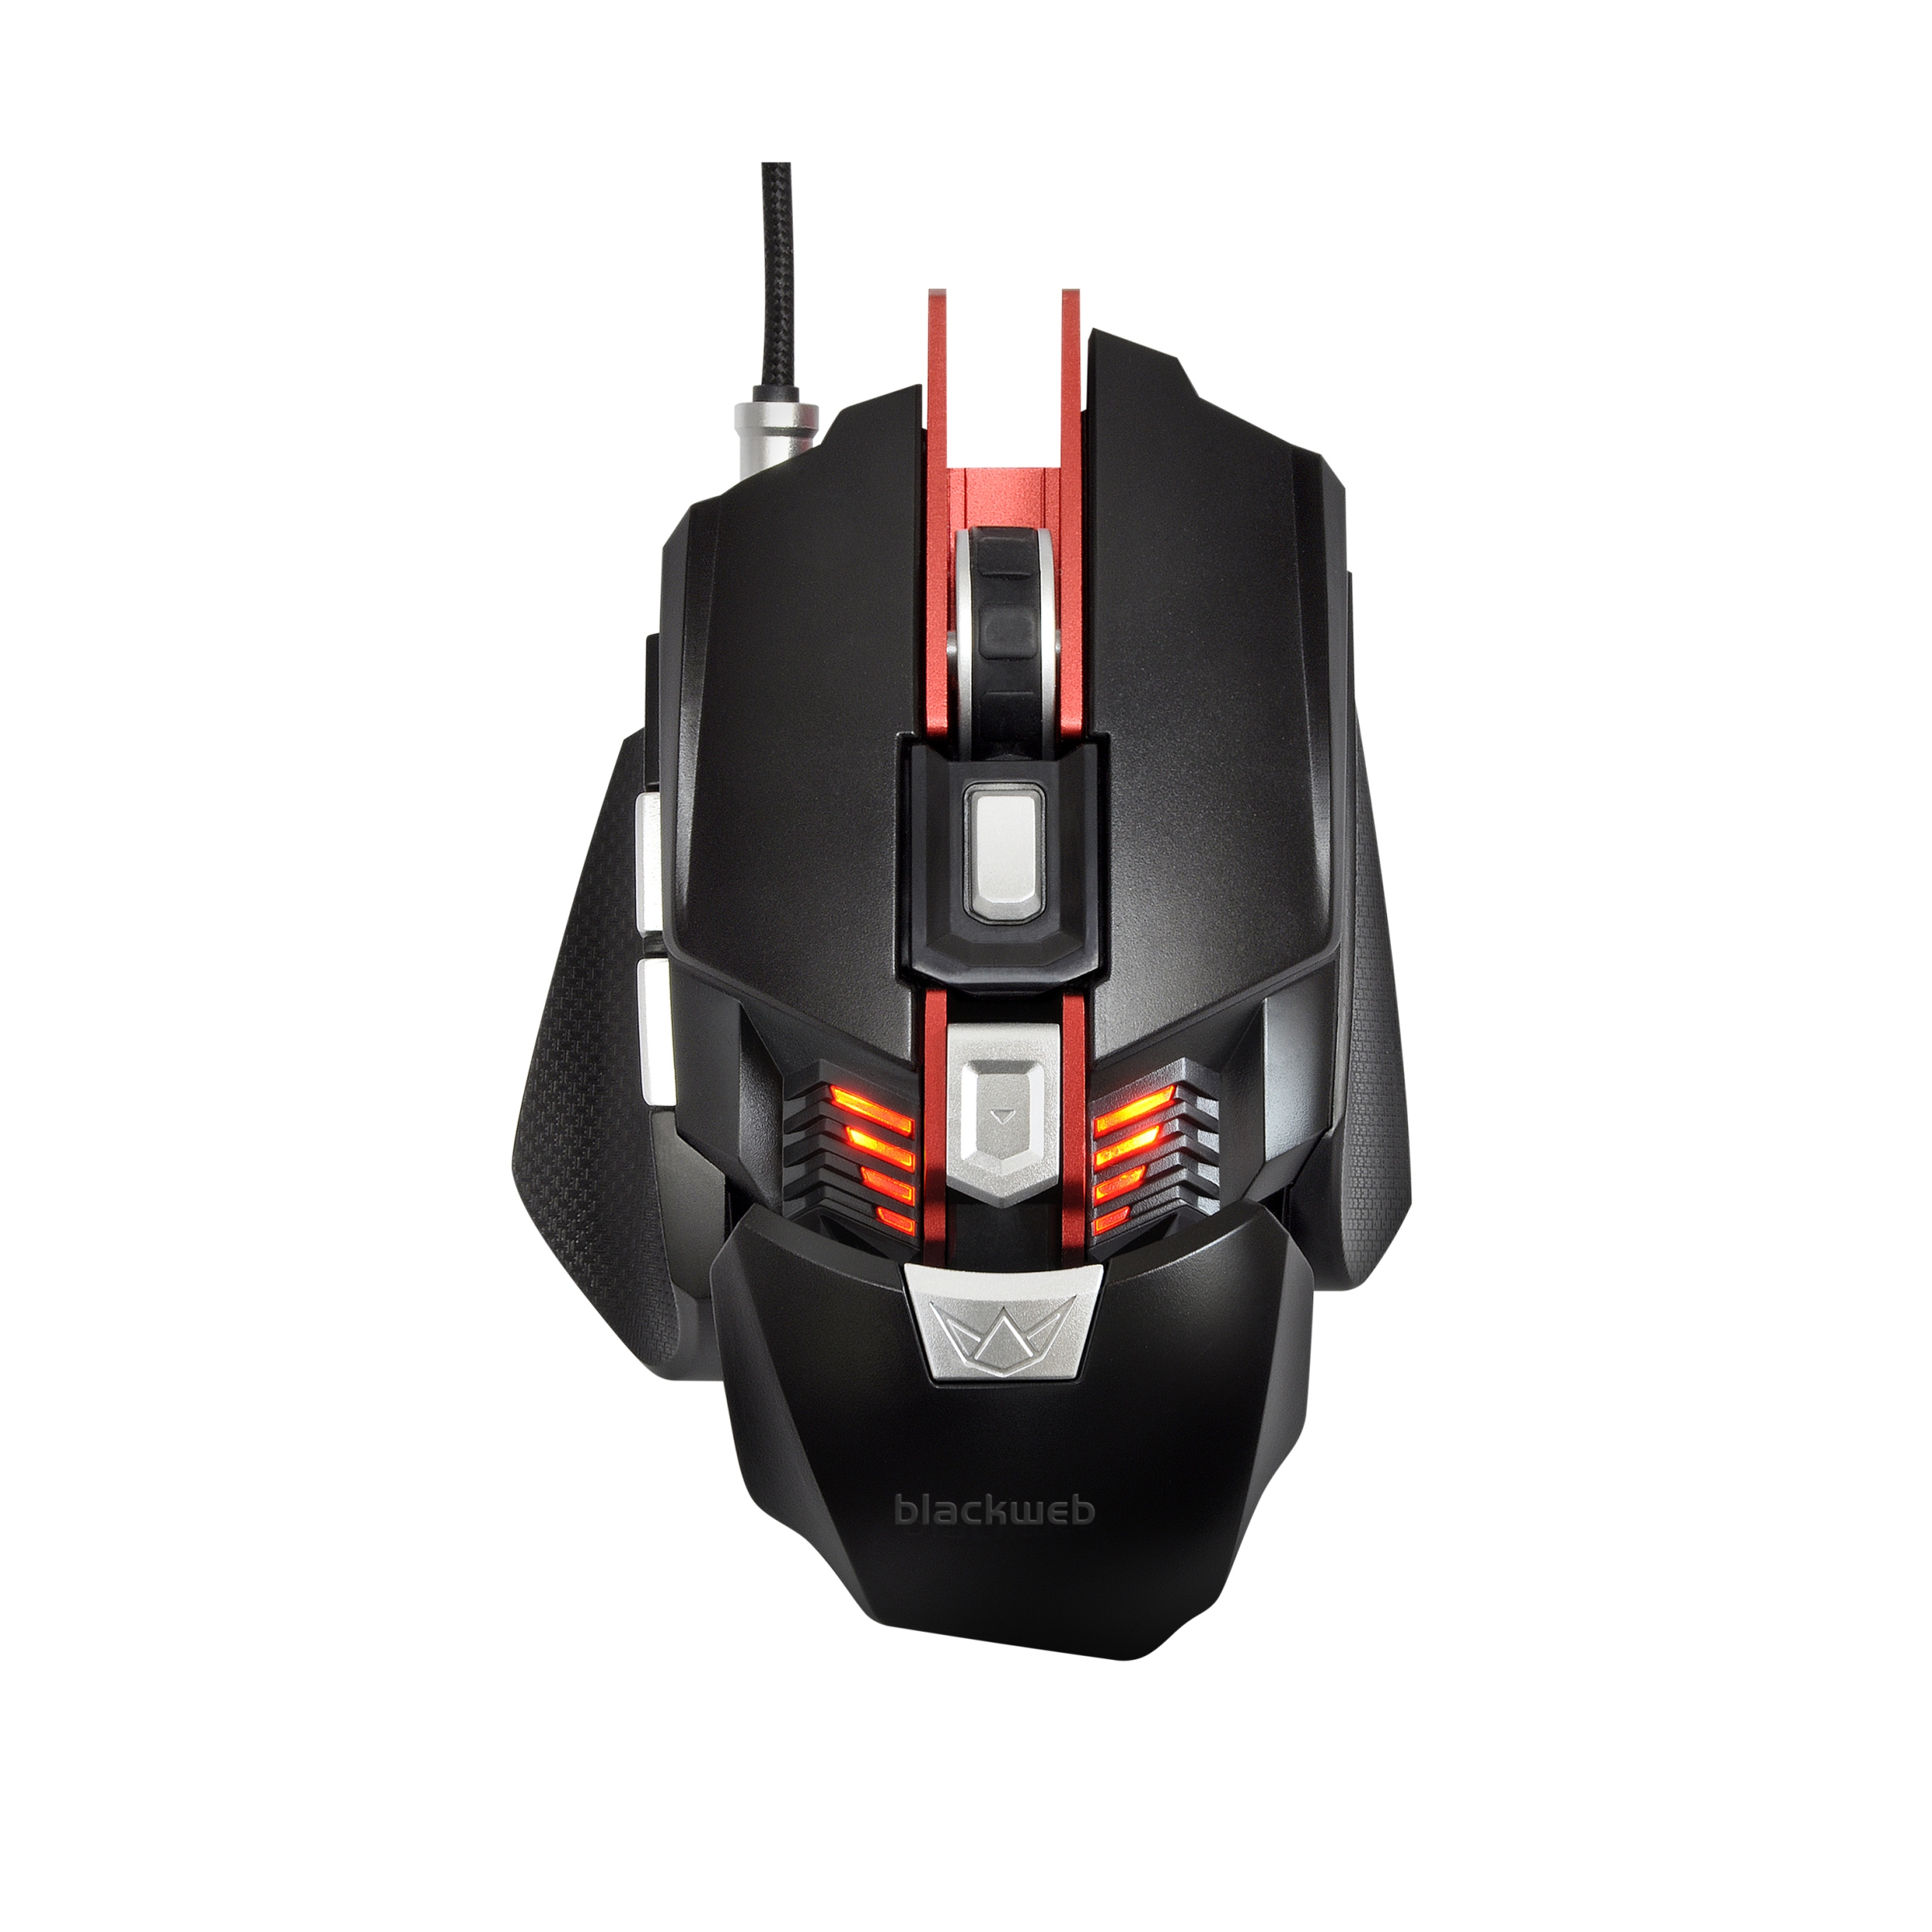 BlackWeb RGB Programmable Gaming Mouse with Adjustable Palm Rest